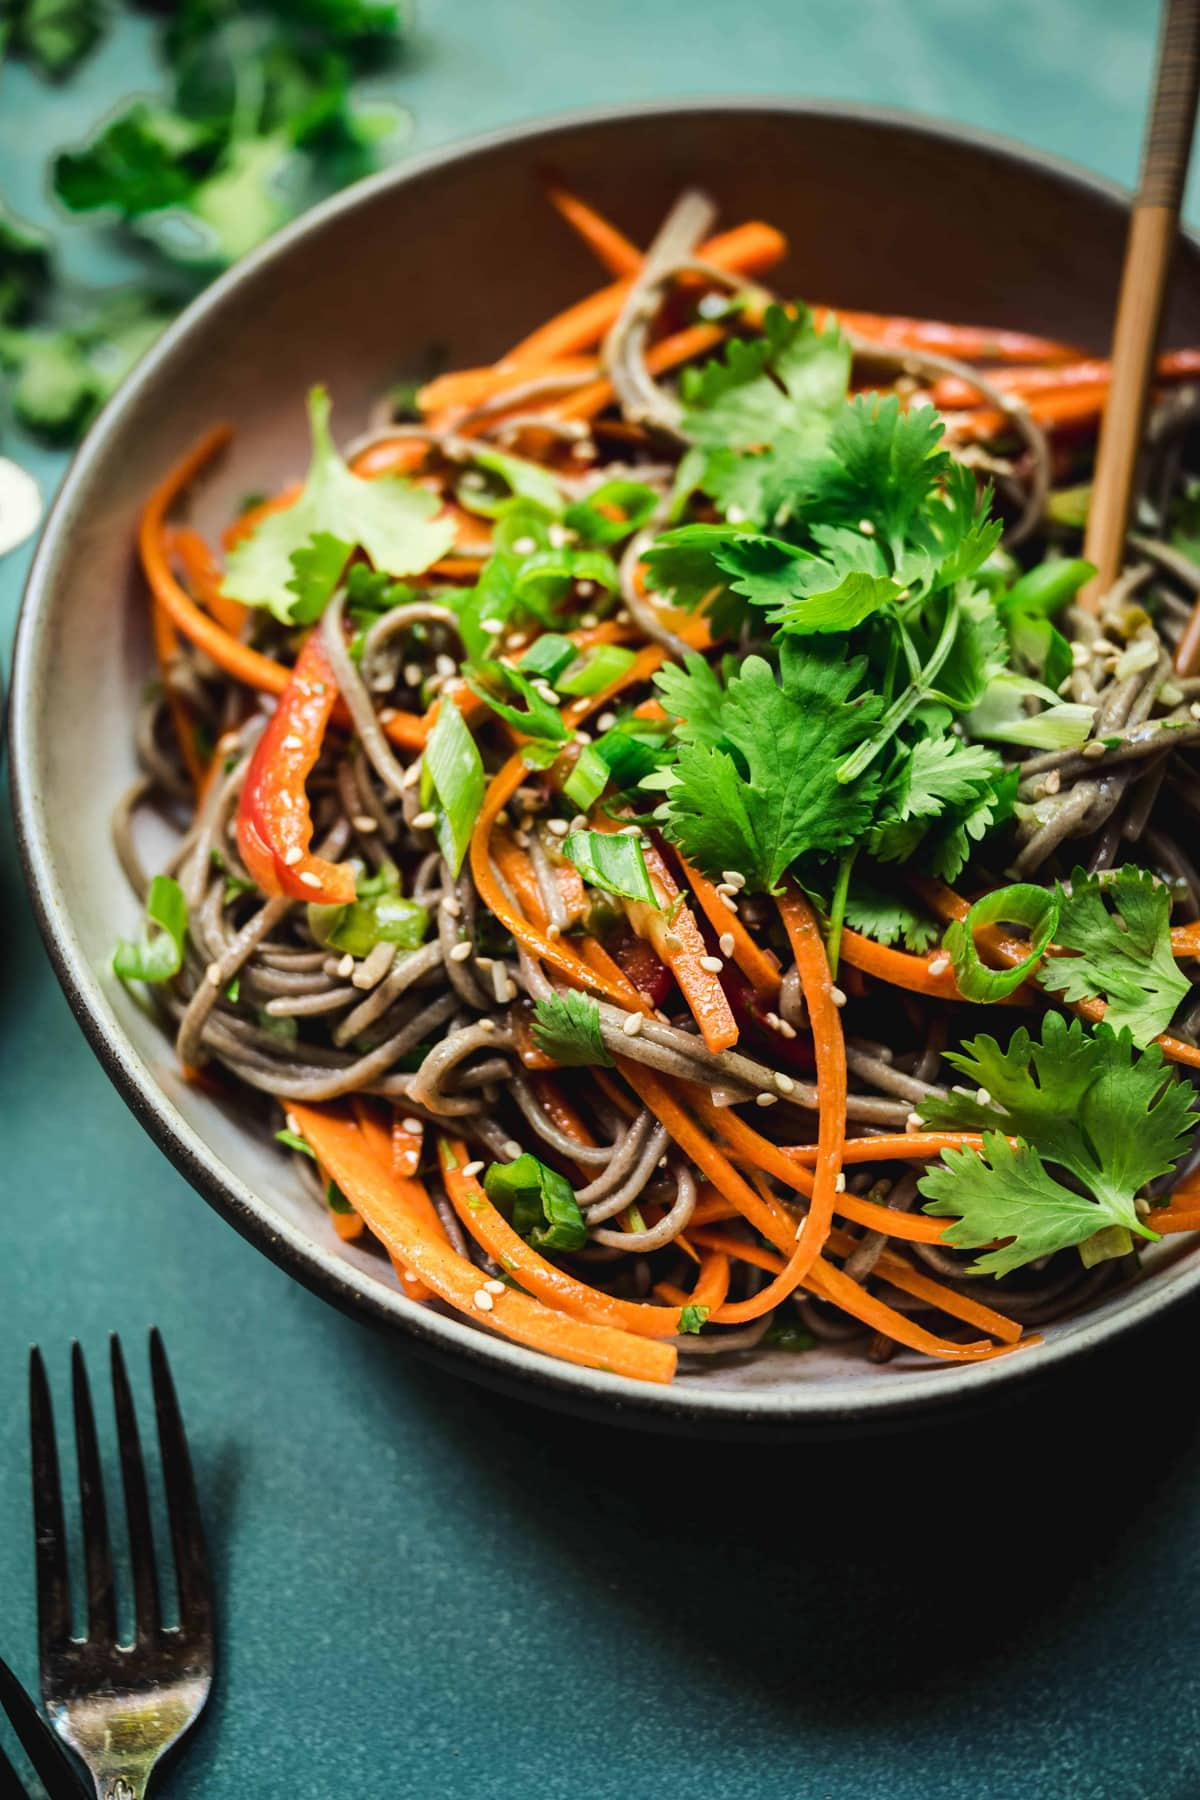 45 degree angle of cold gluten free soba noodle salad with fresh cilantro